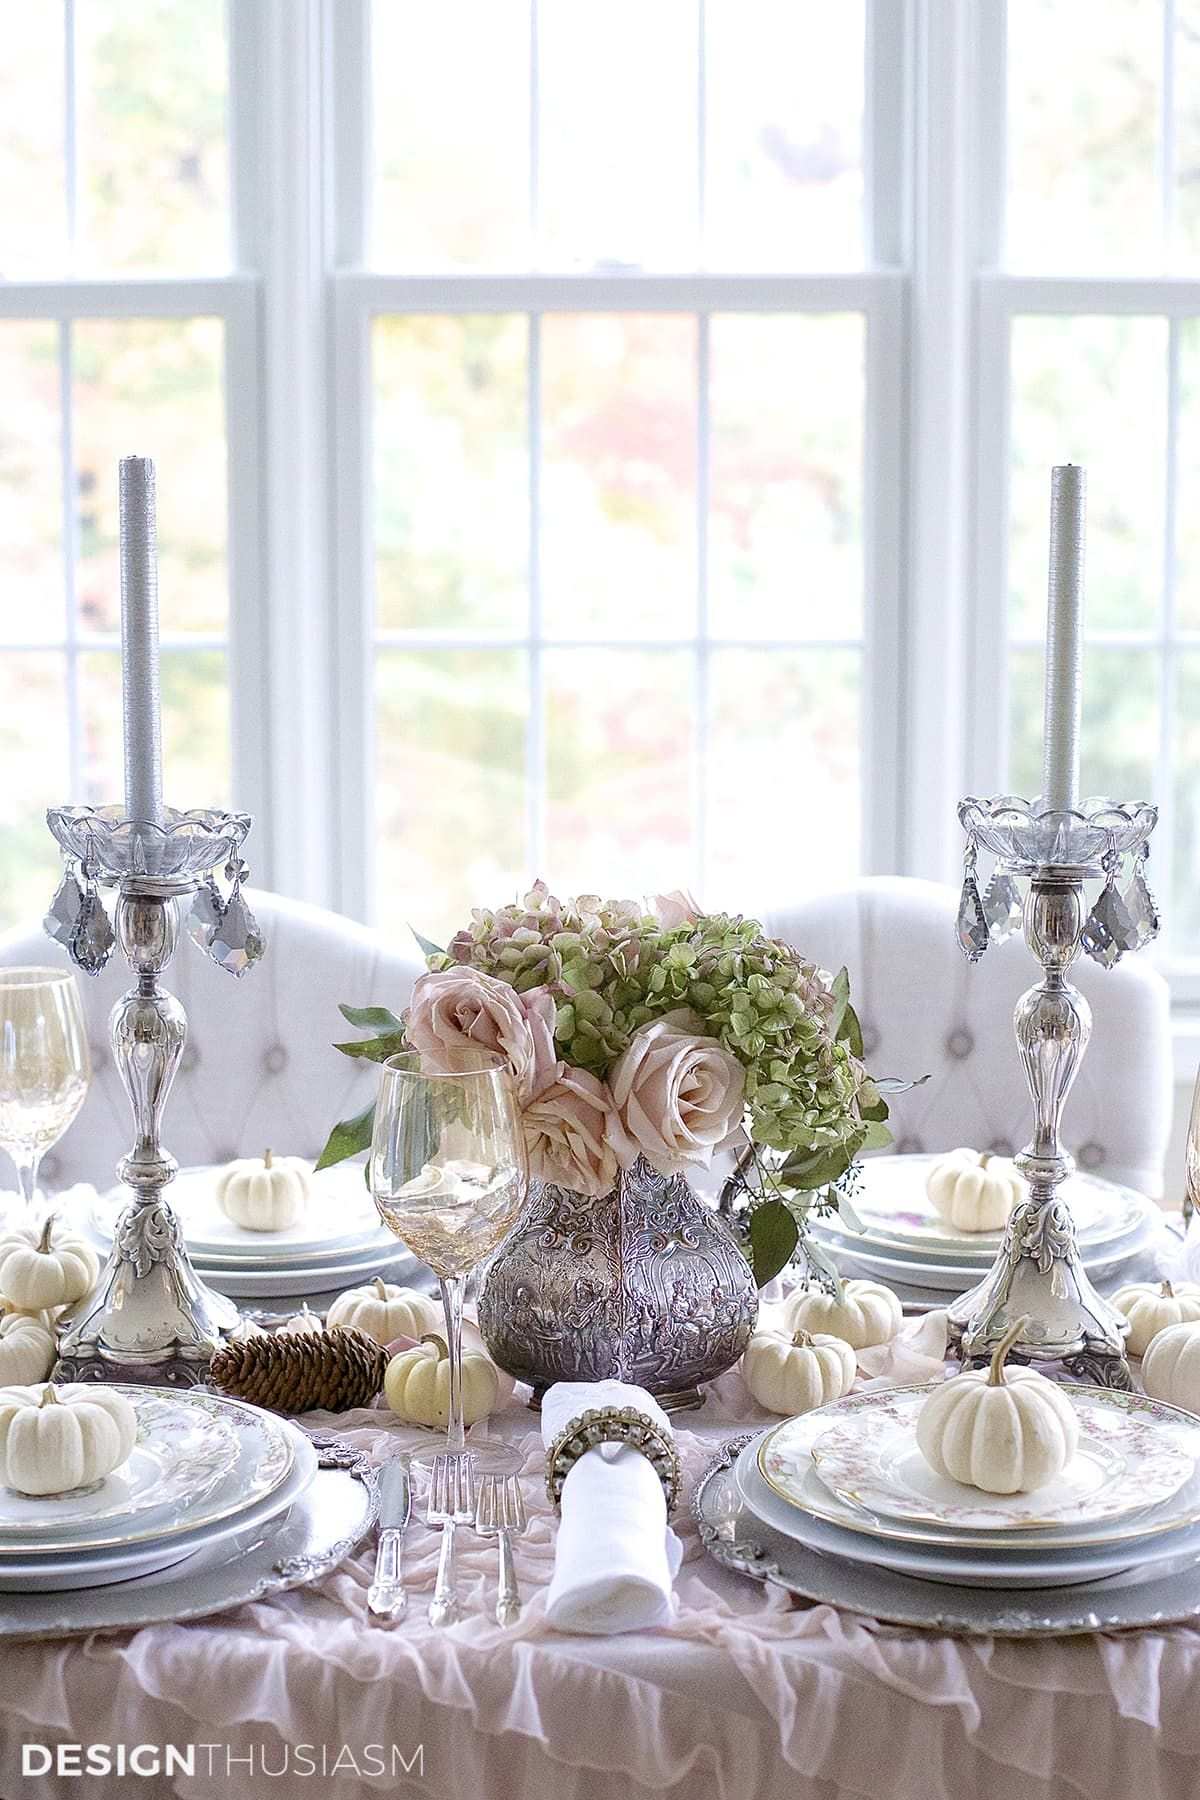 Thanksgiving Table Decor: My Top 12 Thanksgiving Table Setting Ideas #thanksgivingtablesettings